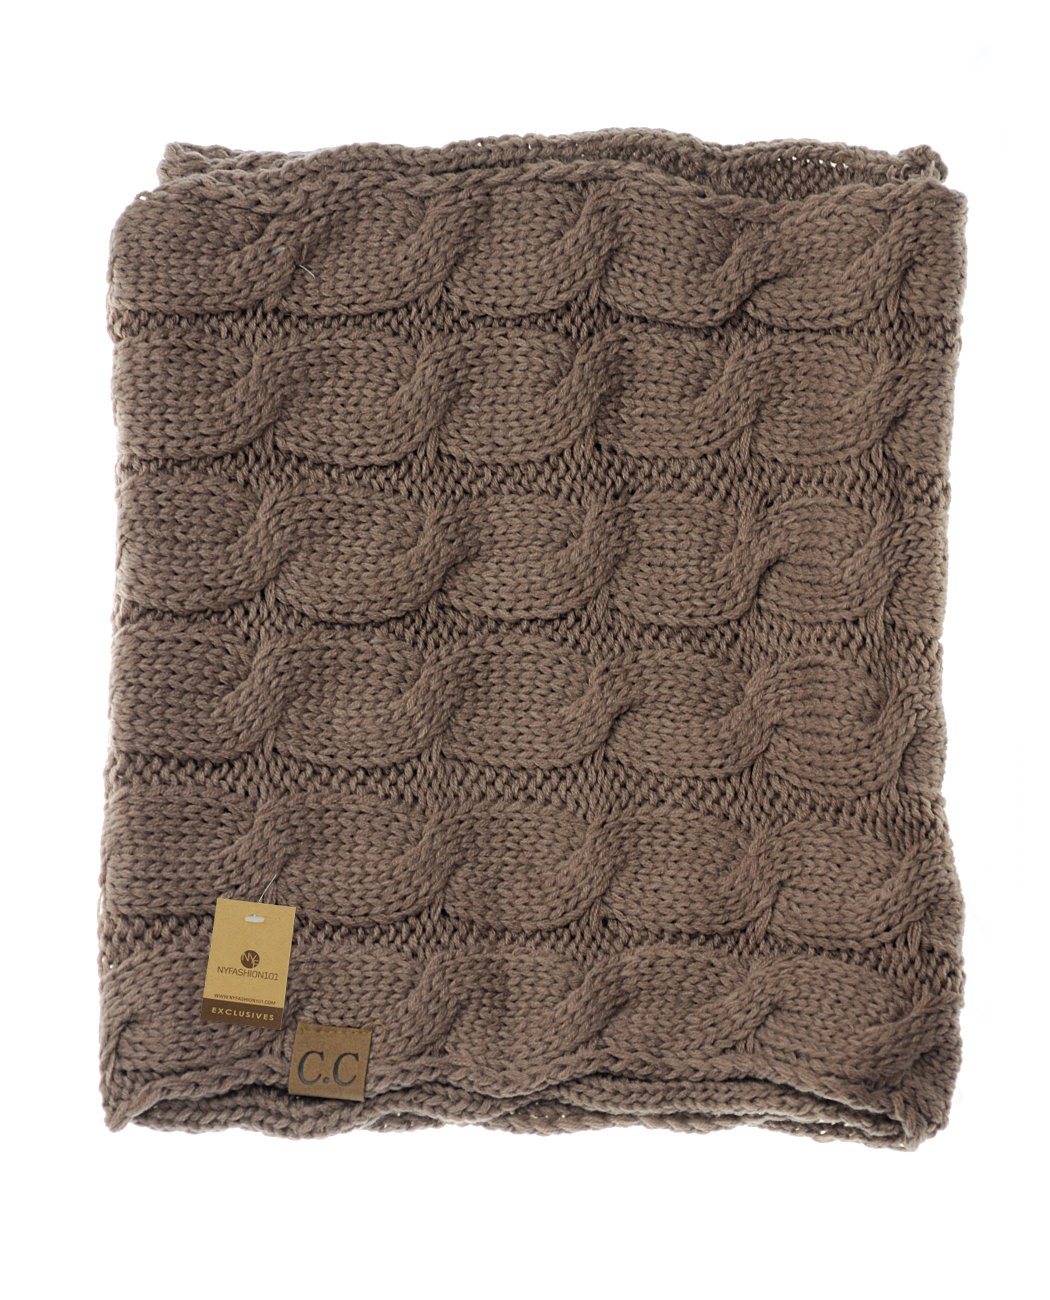 Metallic Gold NYfashion101 Soft Warm Chunky Cable Knit Infinity Loop Scarf